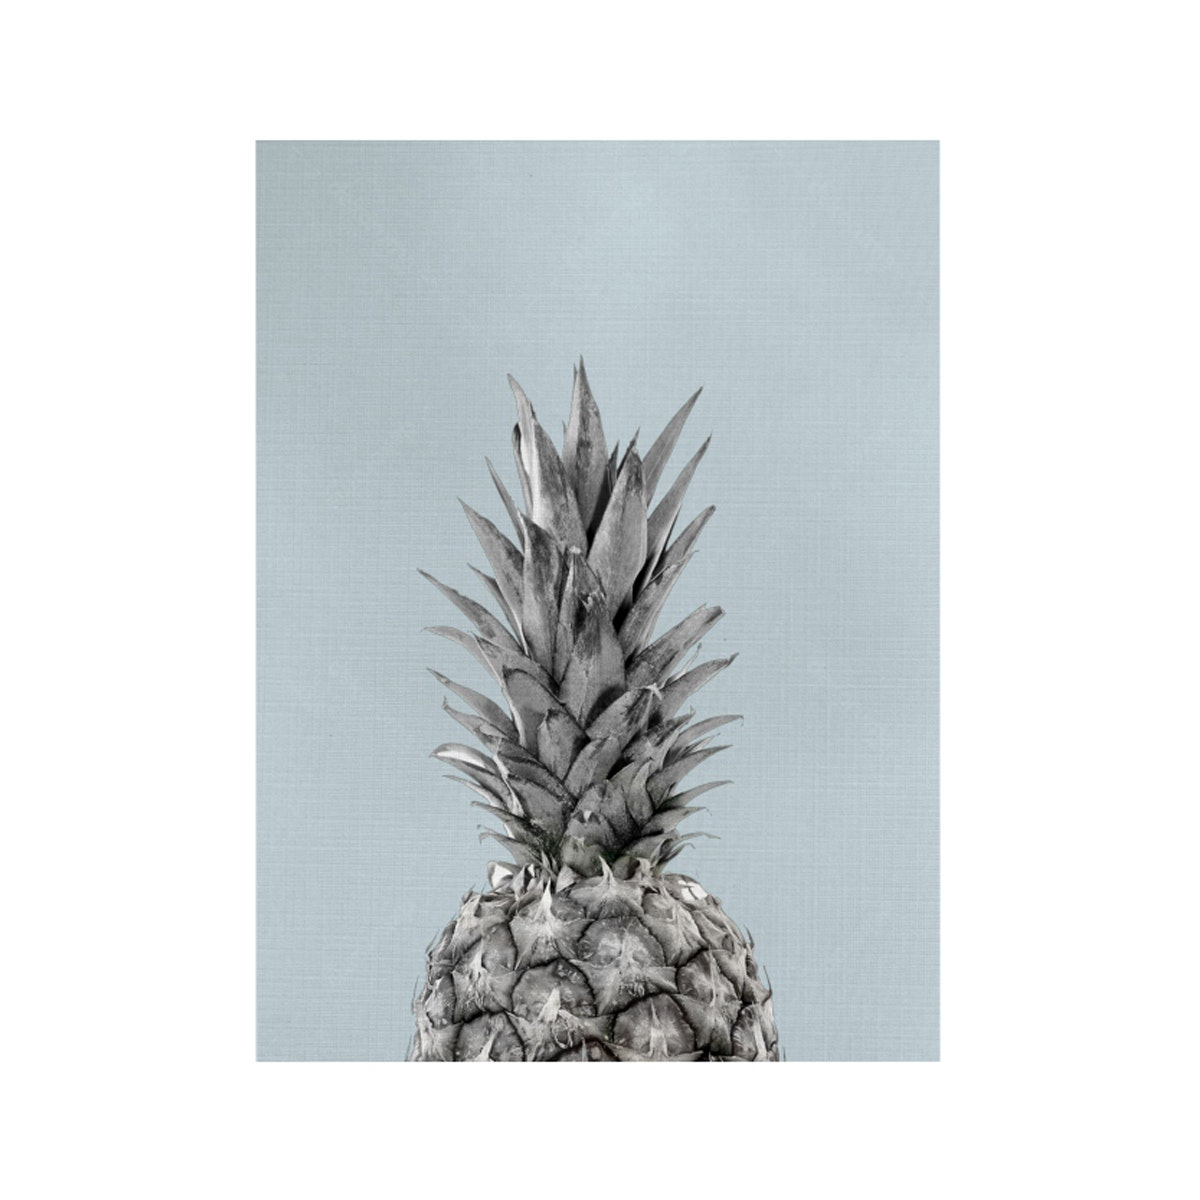 Gulaliku Pineapple on Canvas